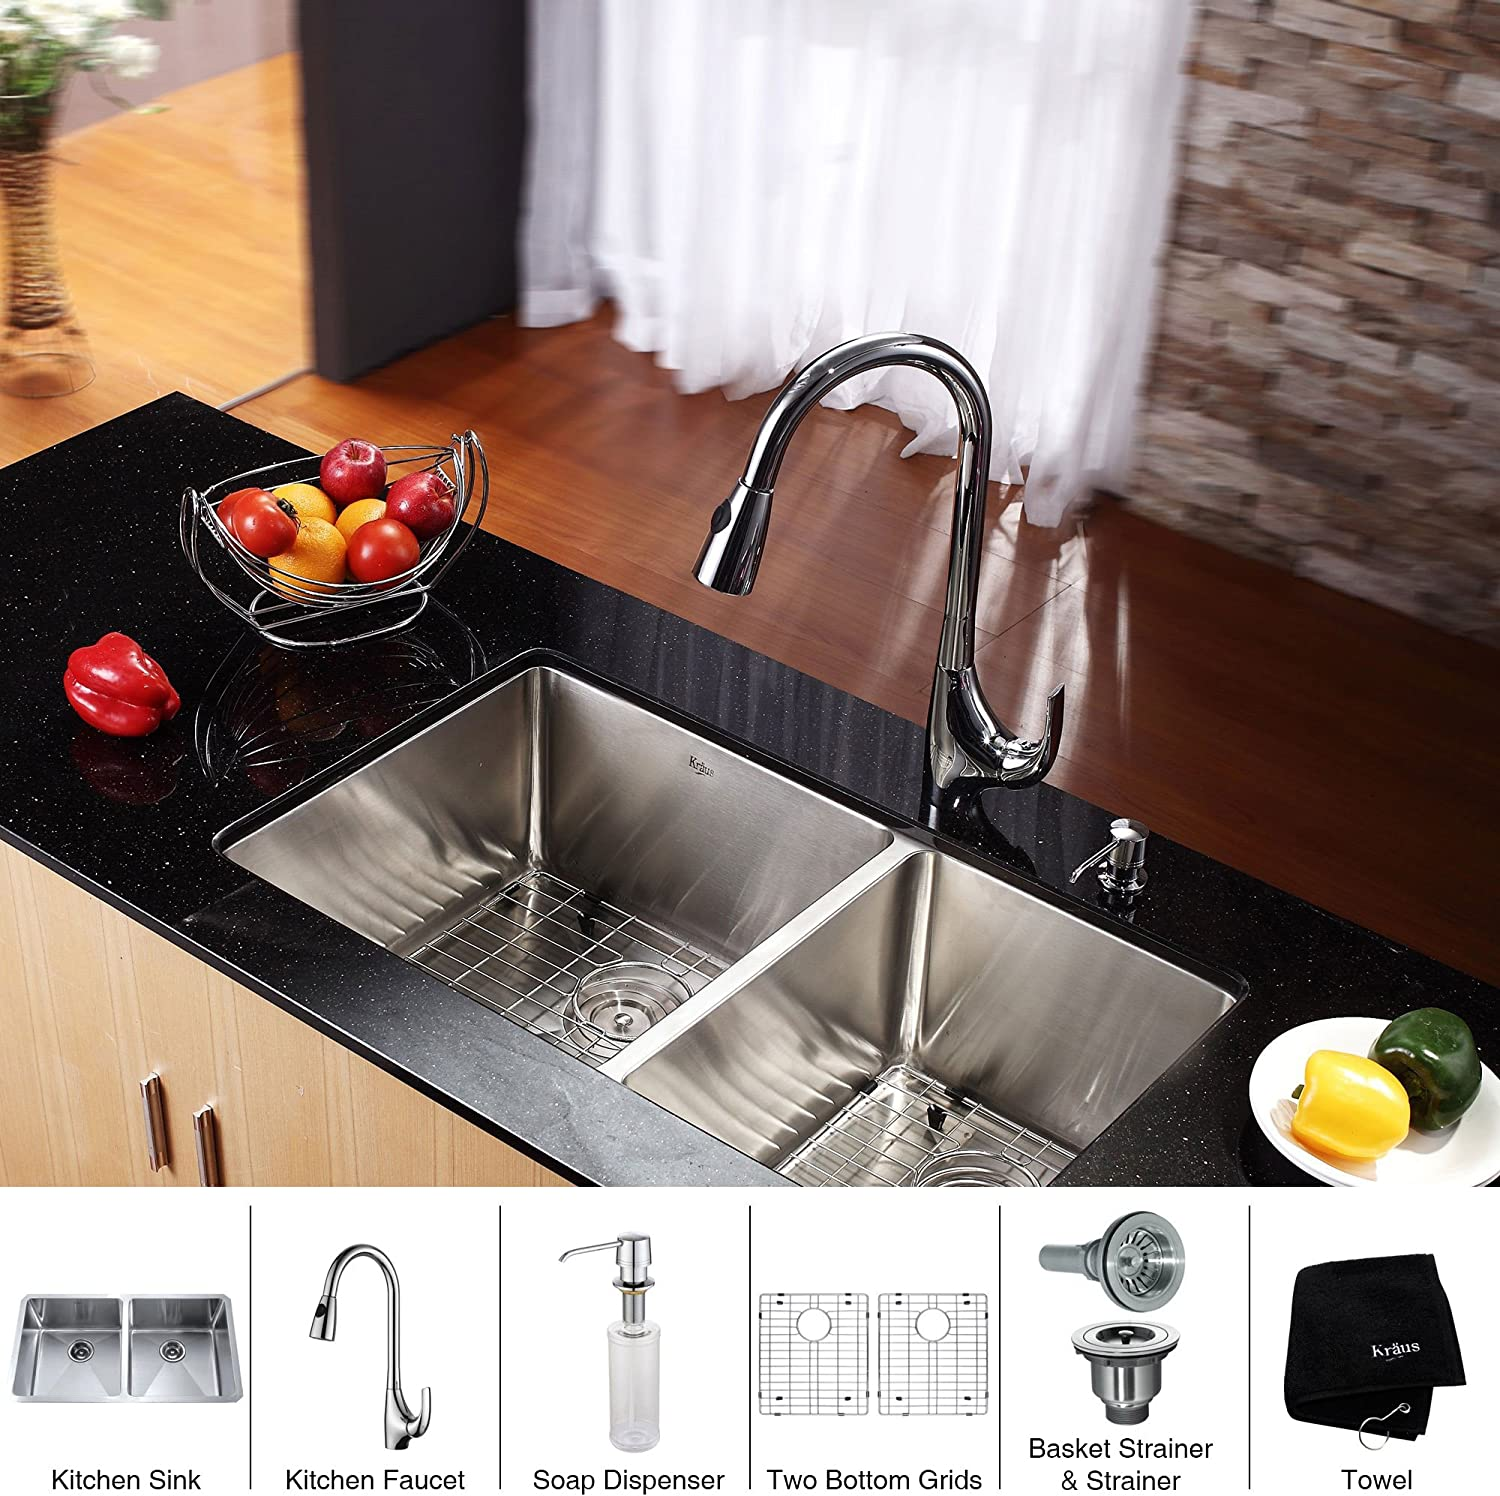 Kitchen Sink Faucet With Pull Down Sprayer Single Level Stainless Steel Kitchen Sink Faucets with Hot Cold Water Hose